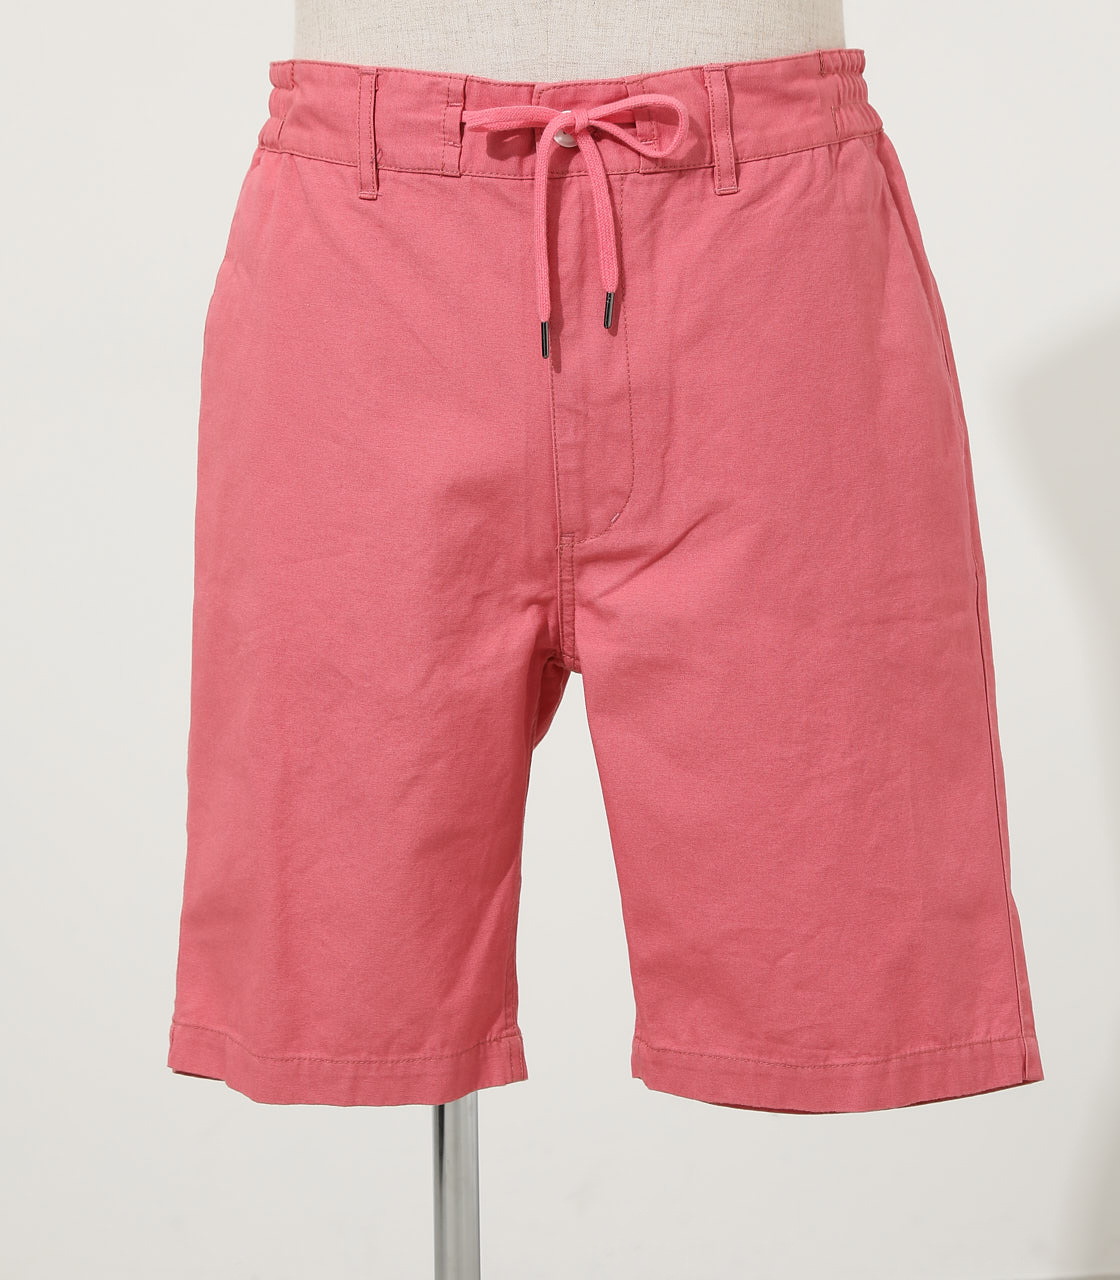 TWILL COLOR SHORTS 詳細画像 PNK 2